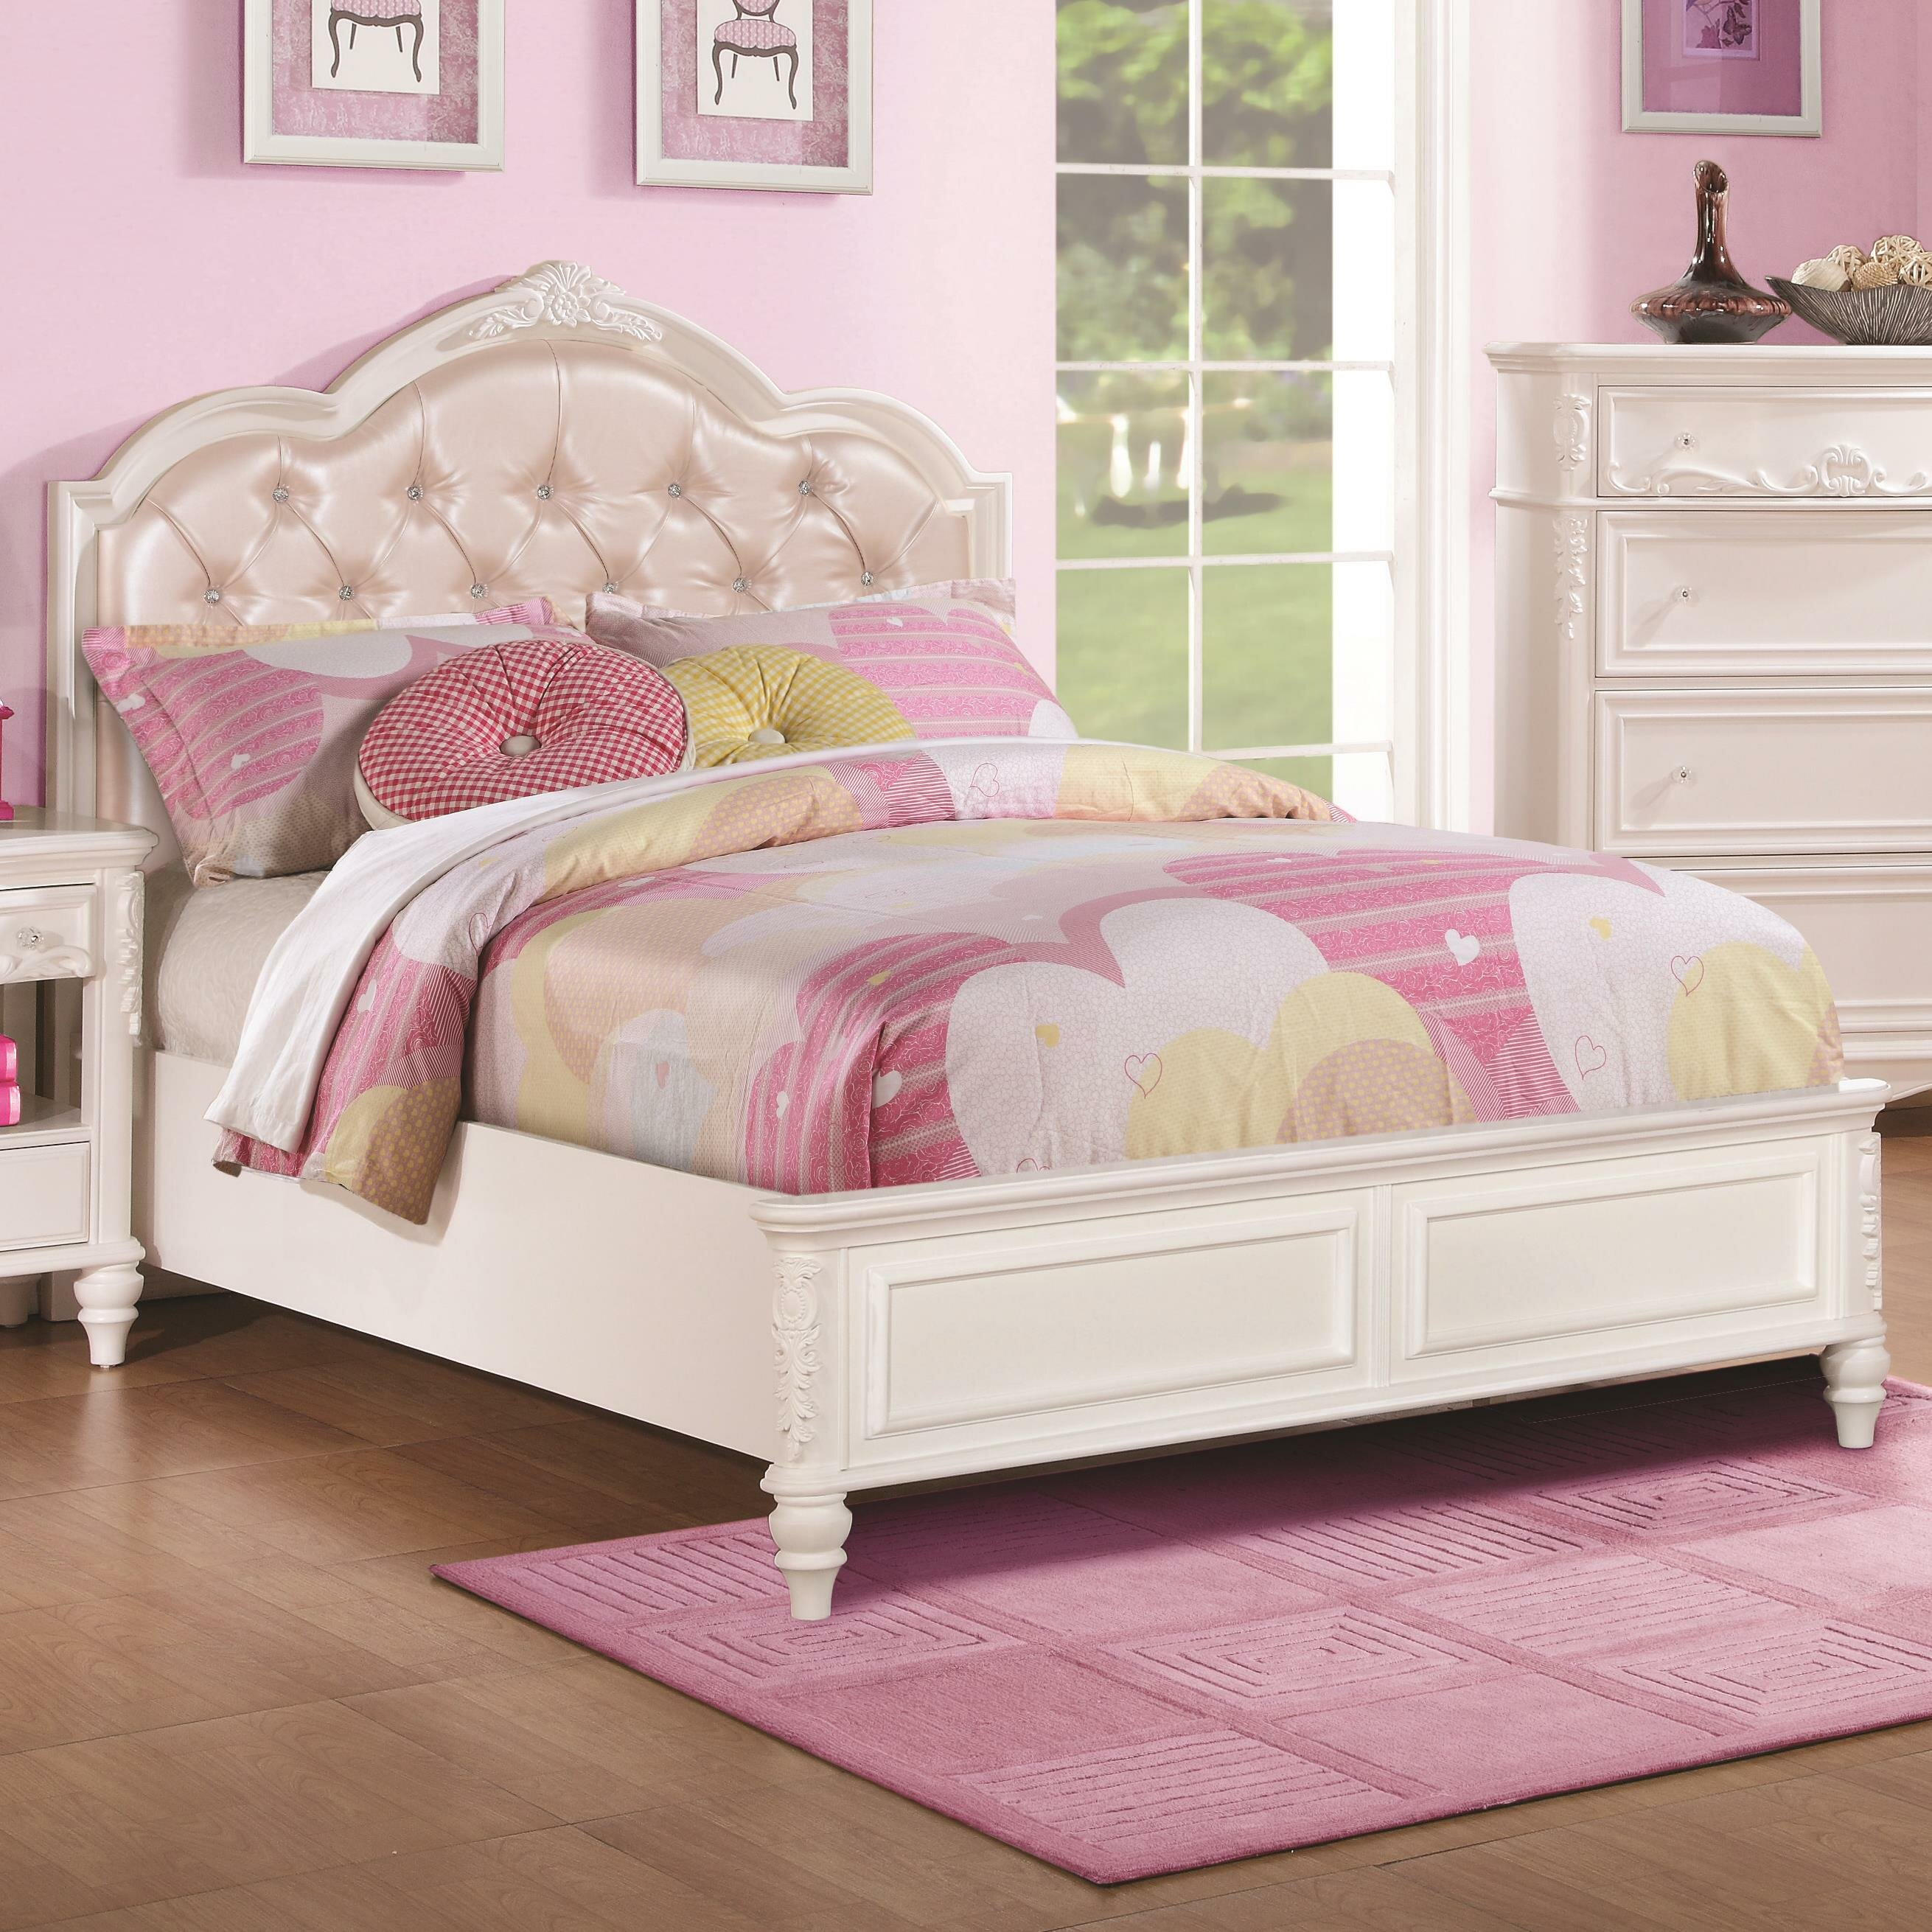 Wildon Home ® Caroline Panel Bed & Reviews | Wayfair